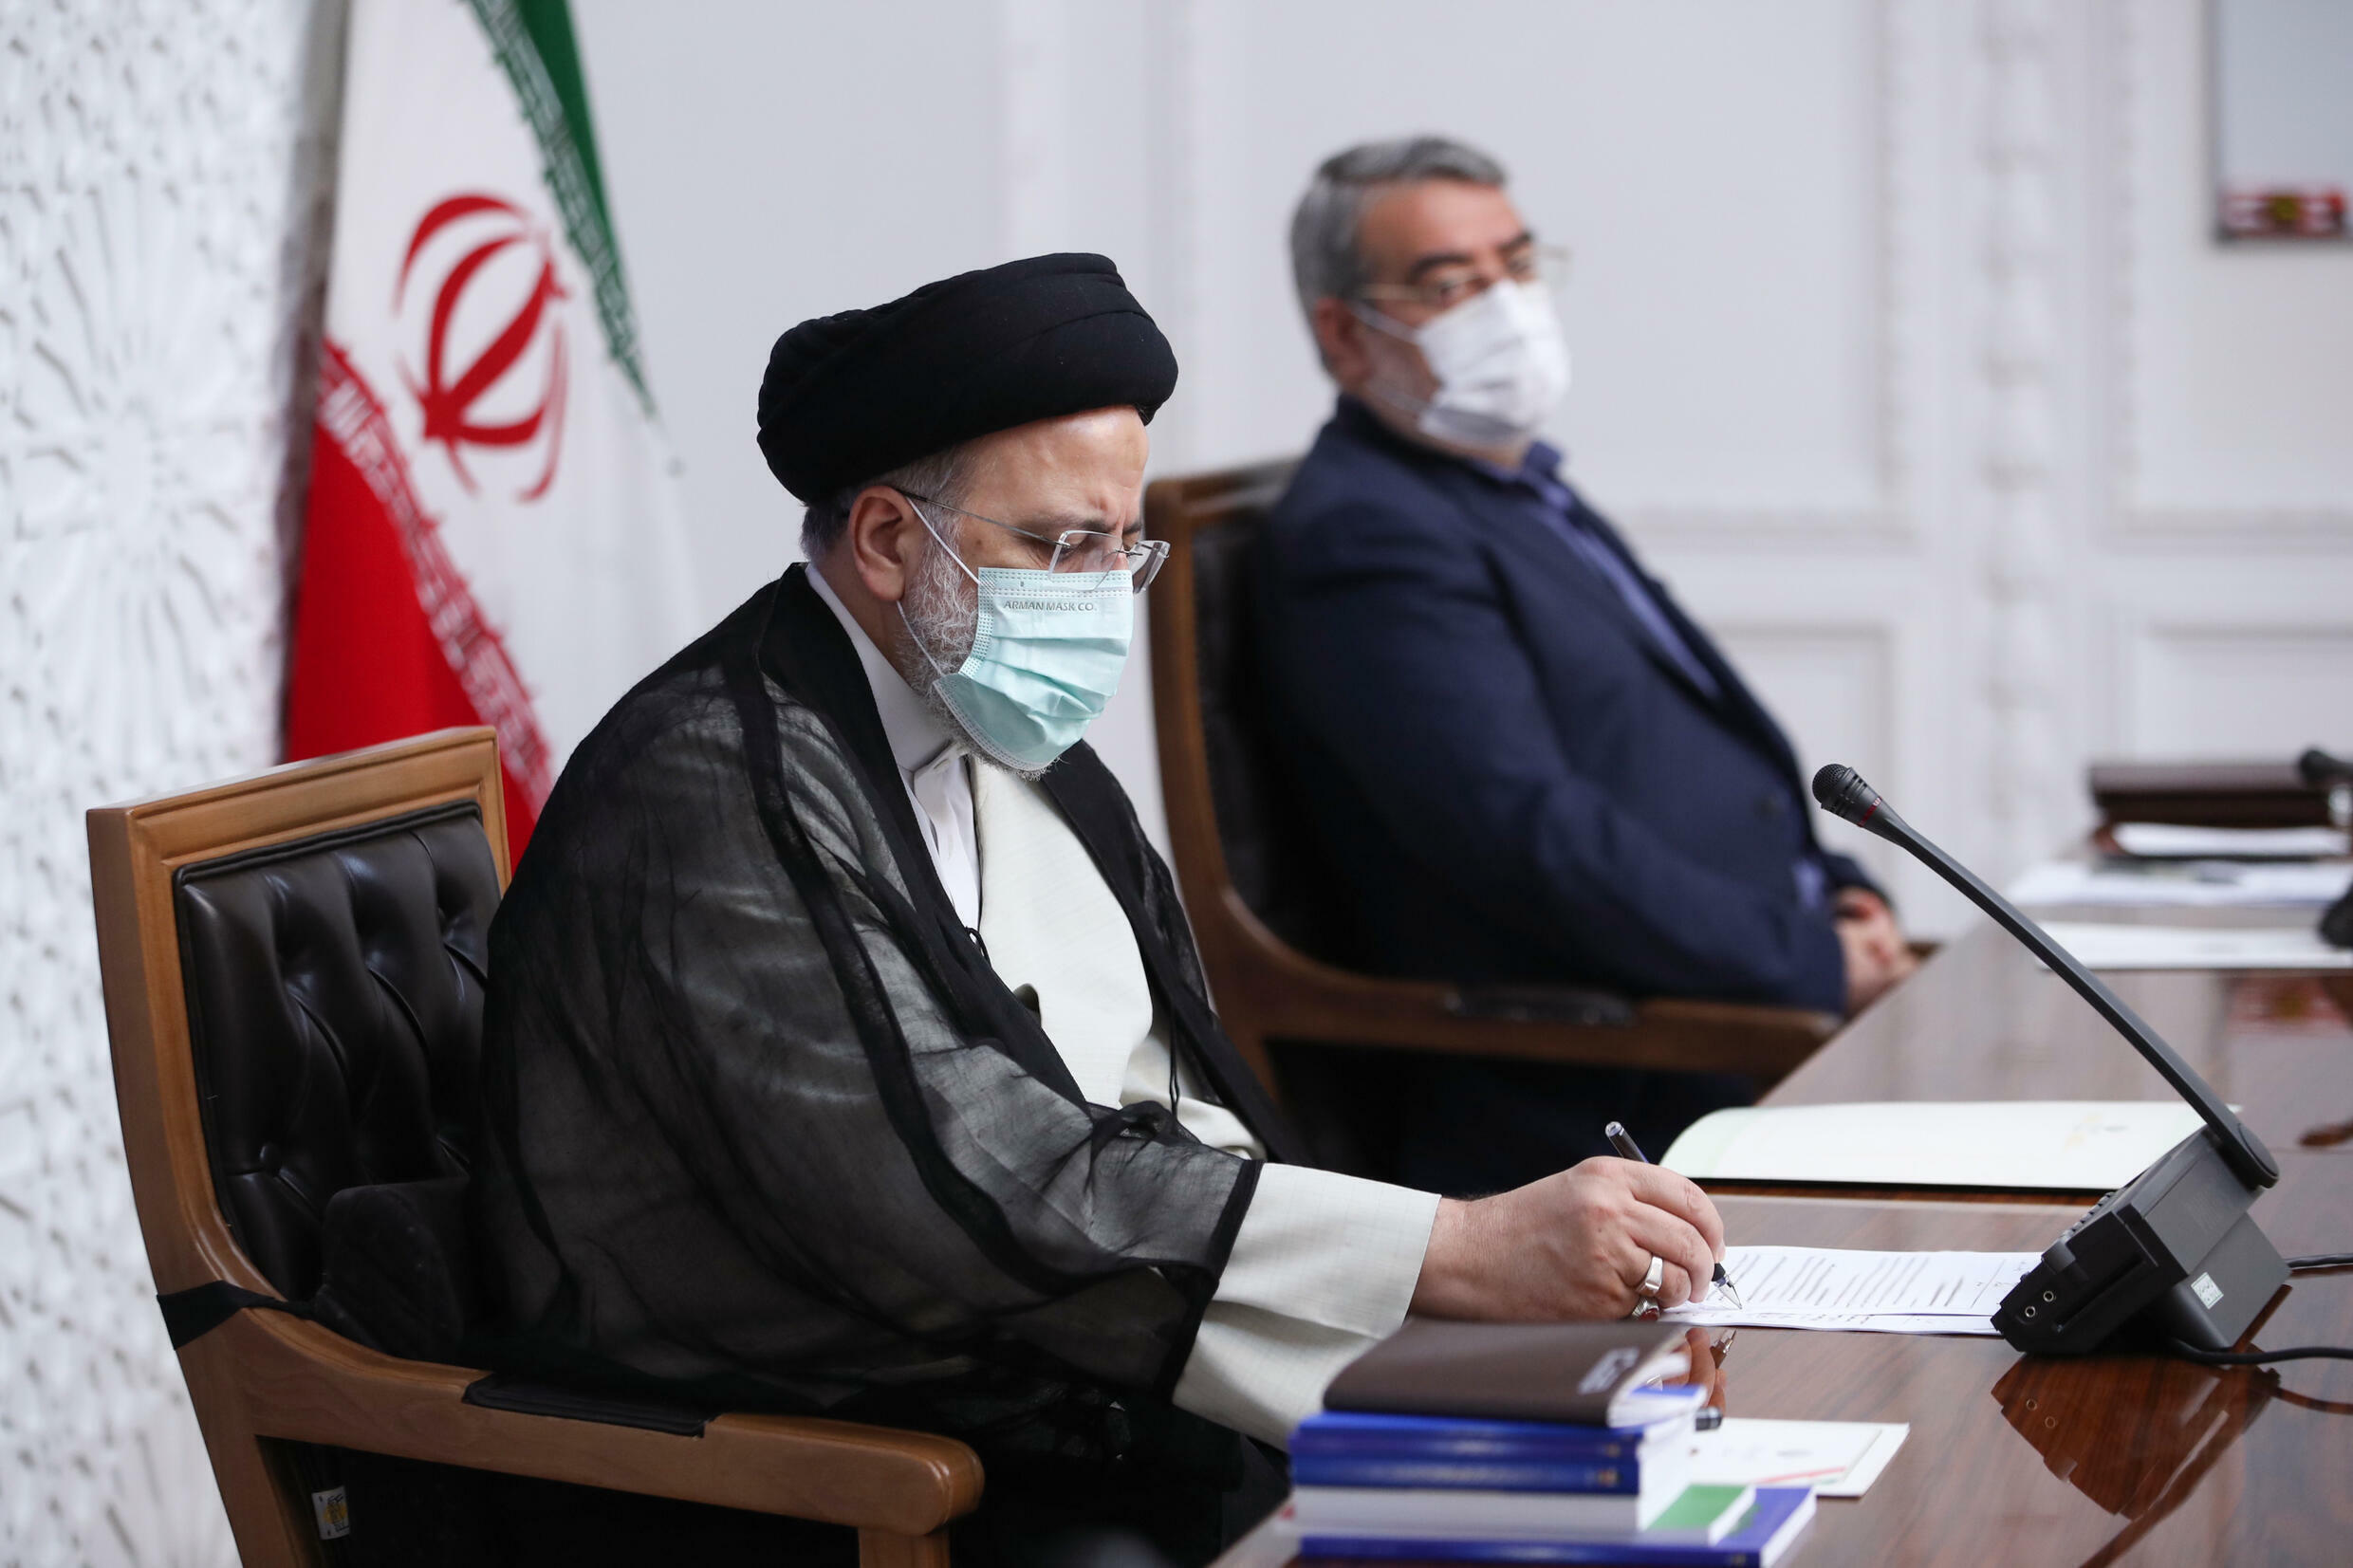 New President Ebrahim Raisi chairs a meeting of Iran's Covid task force for the first time just a day after his inauguration